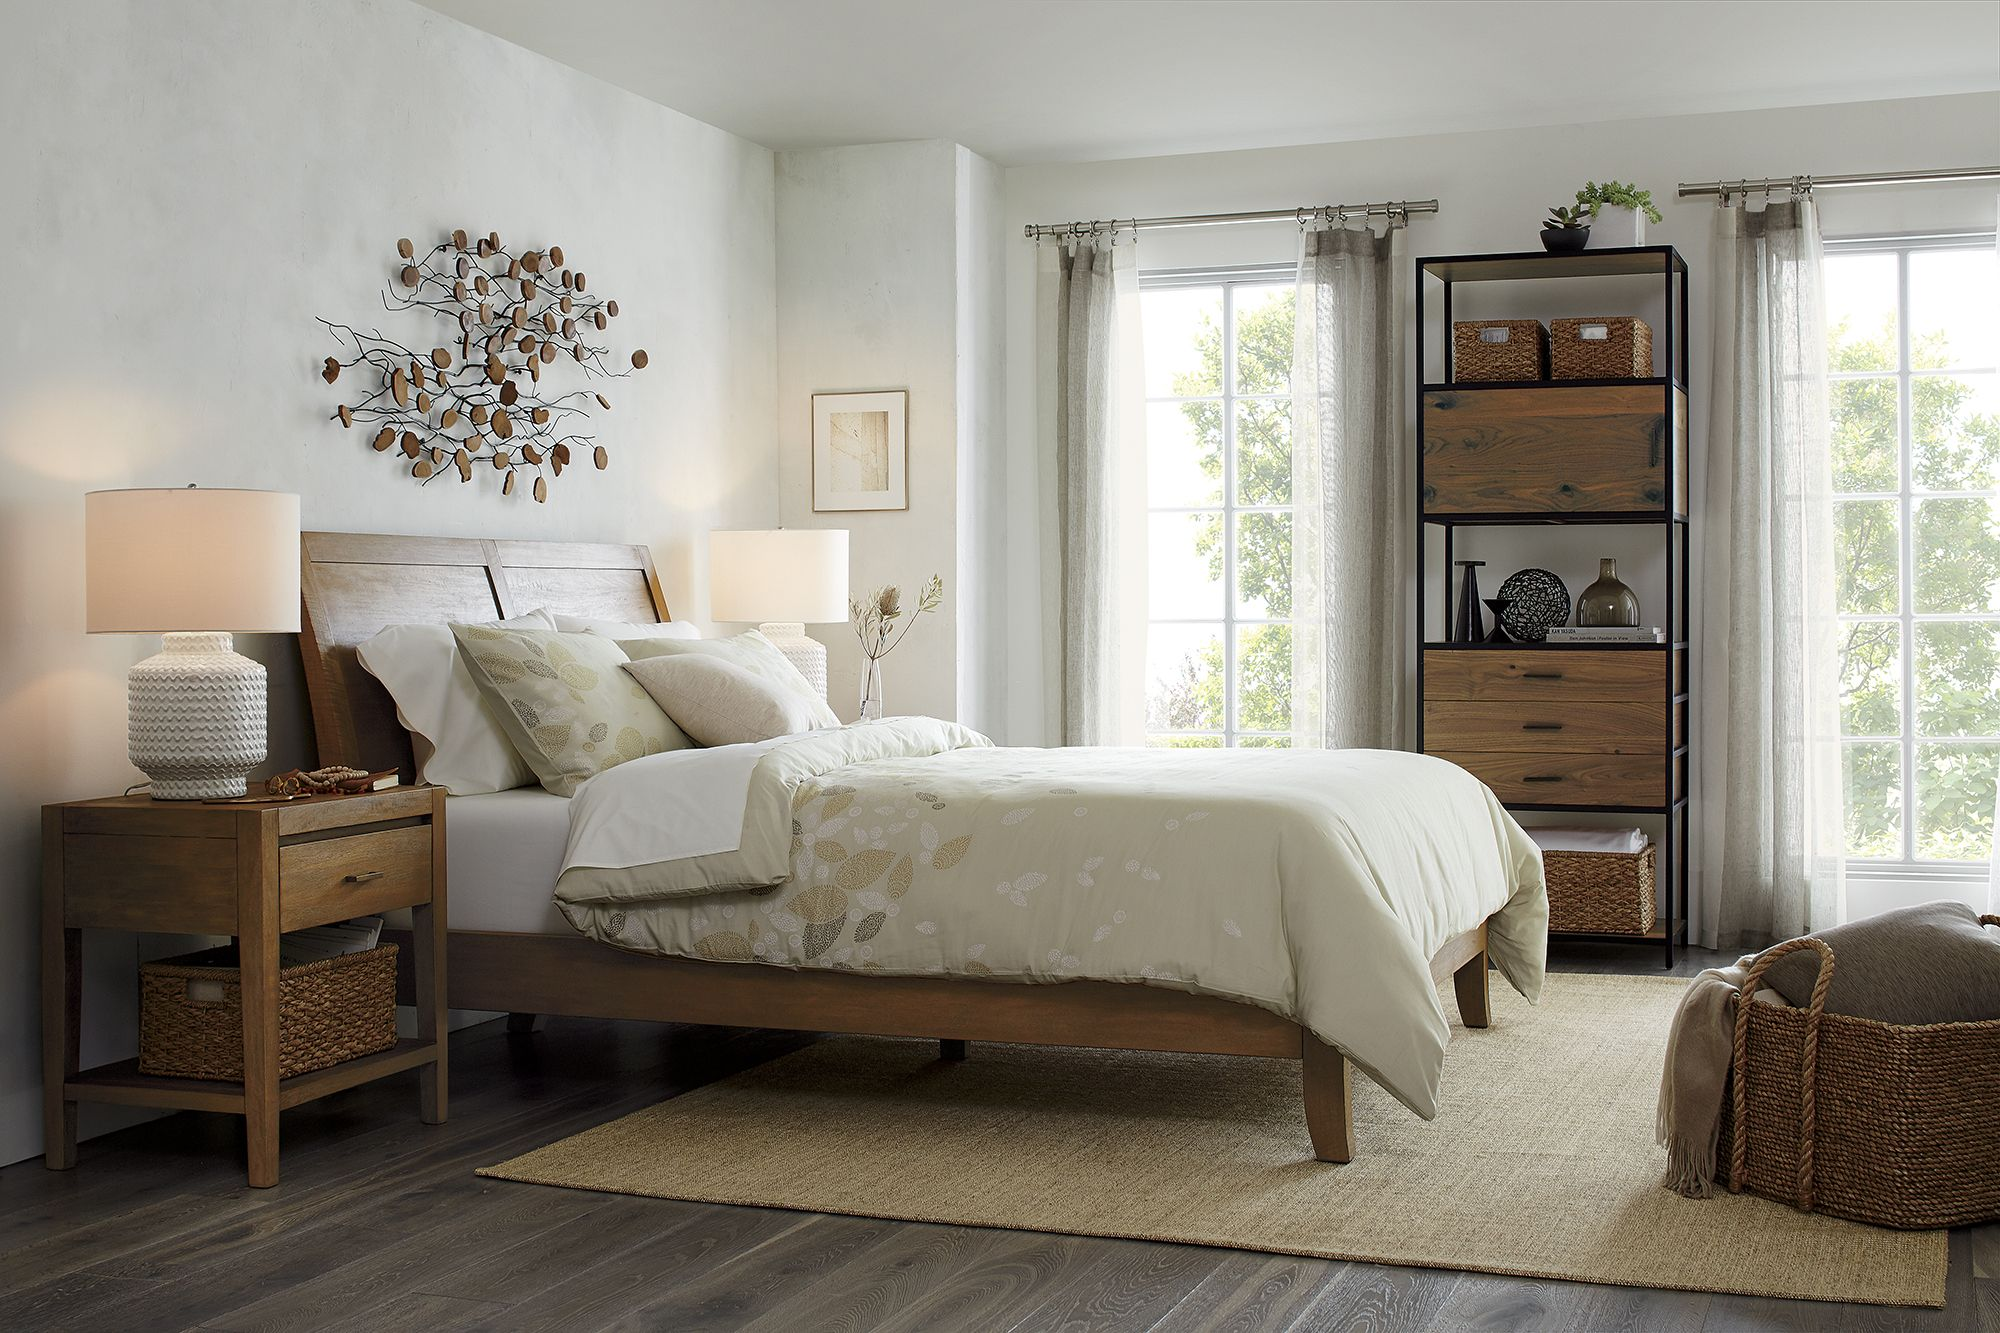 Inspired By The Classic Sleigh Style Bed, The High Back Headboard Of